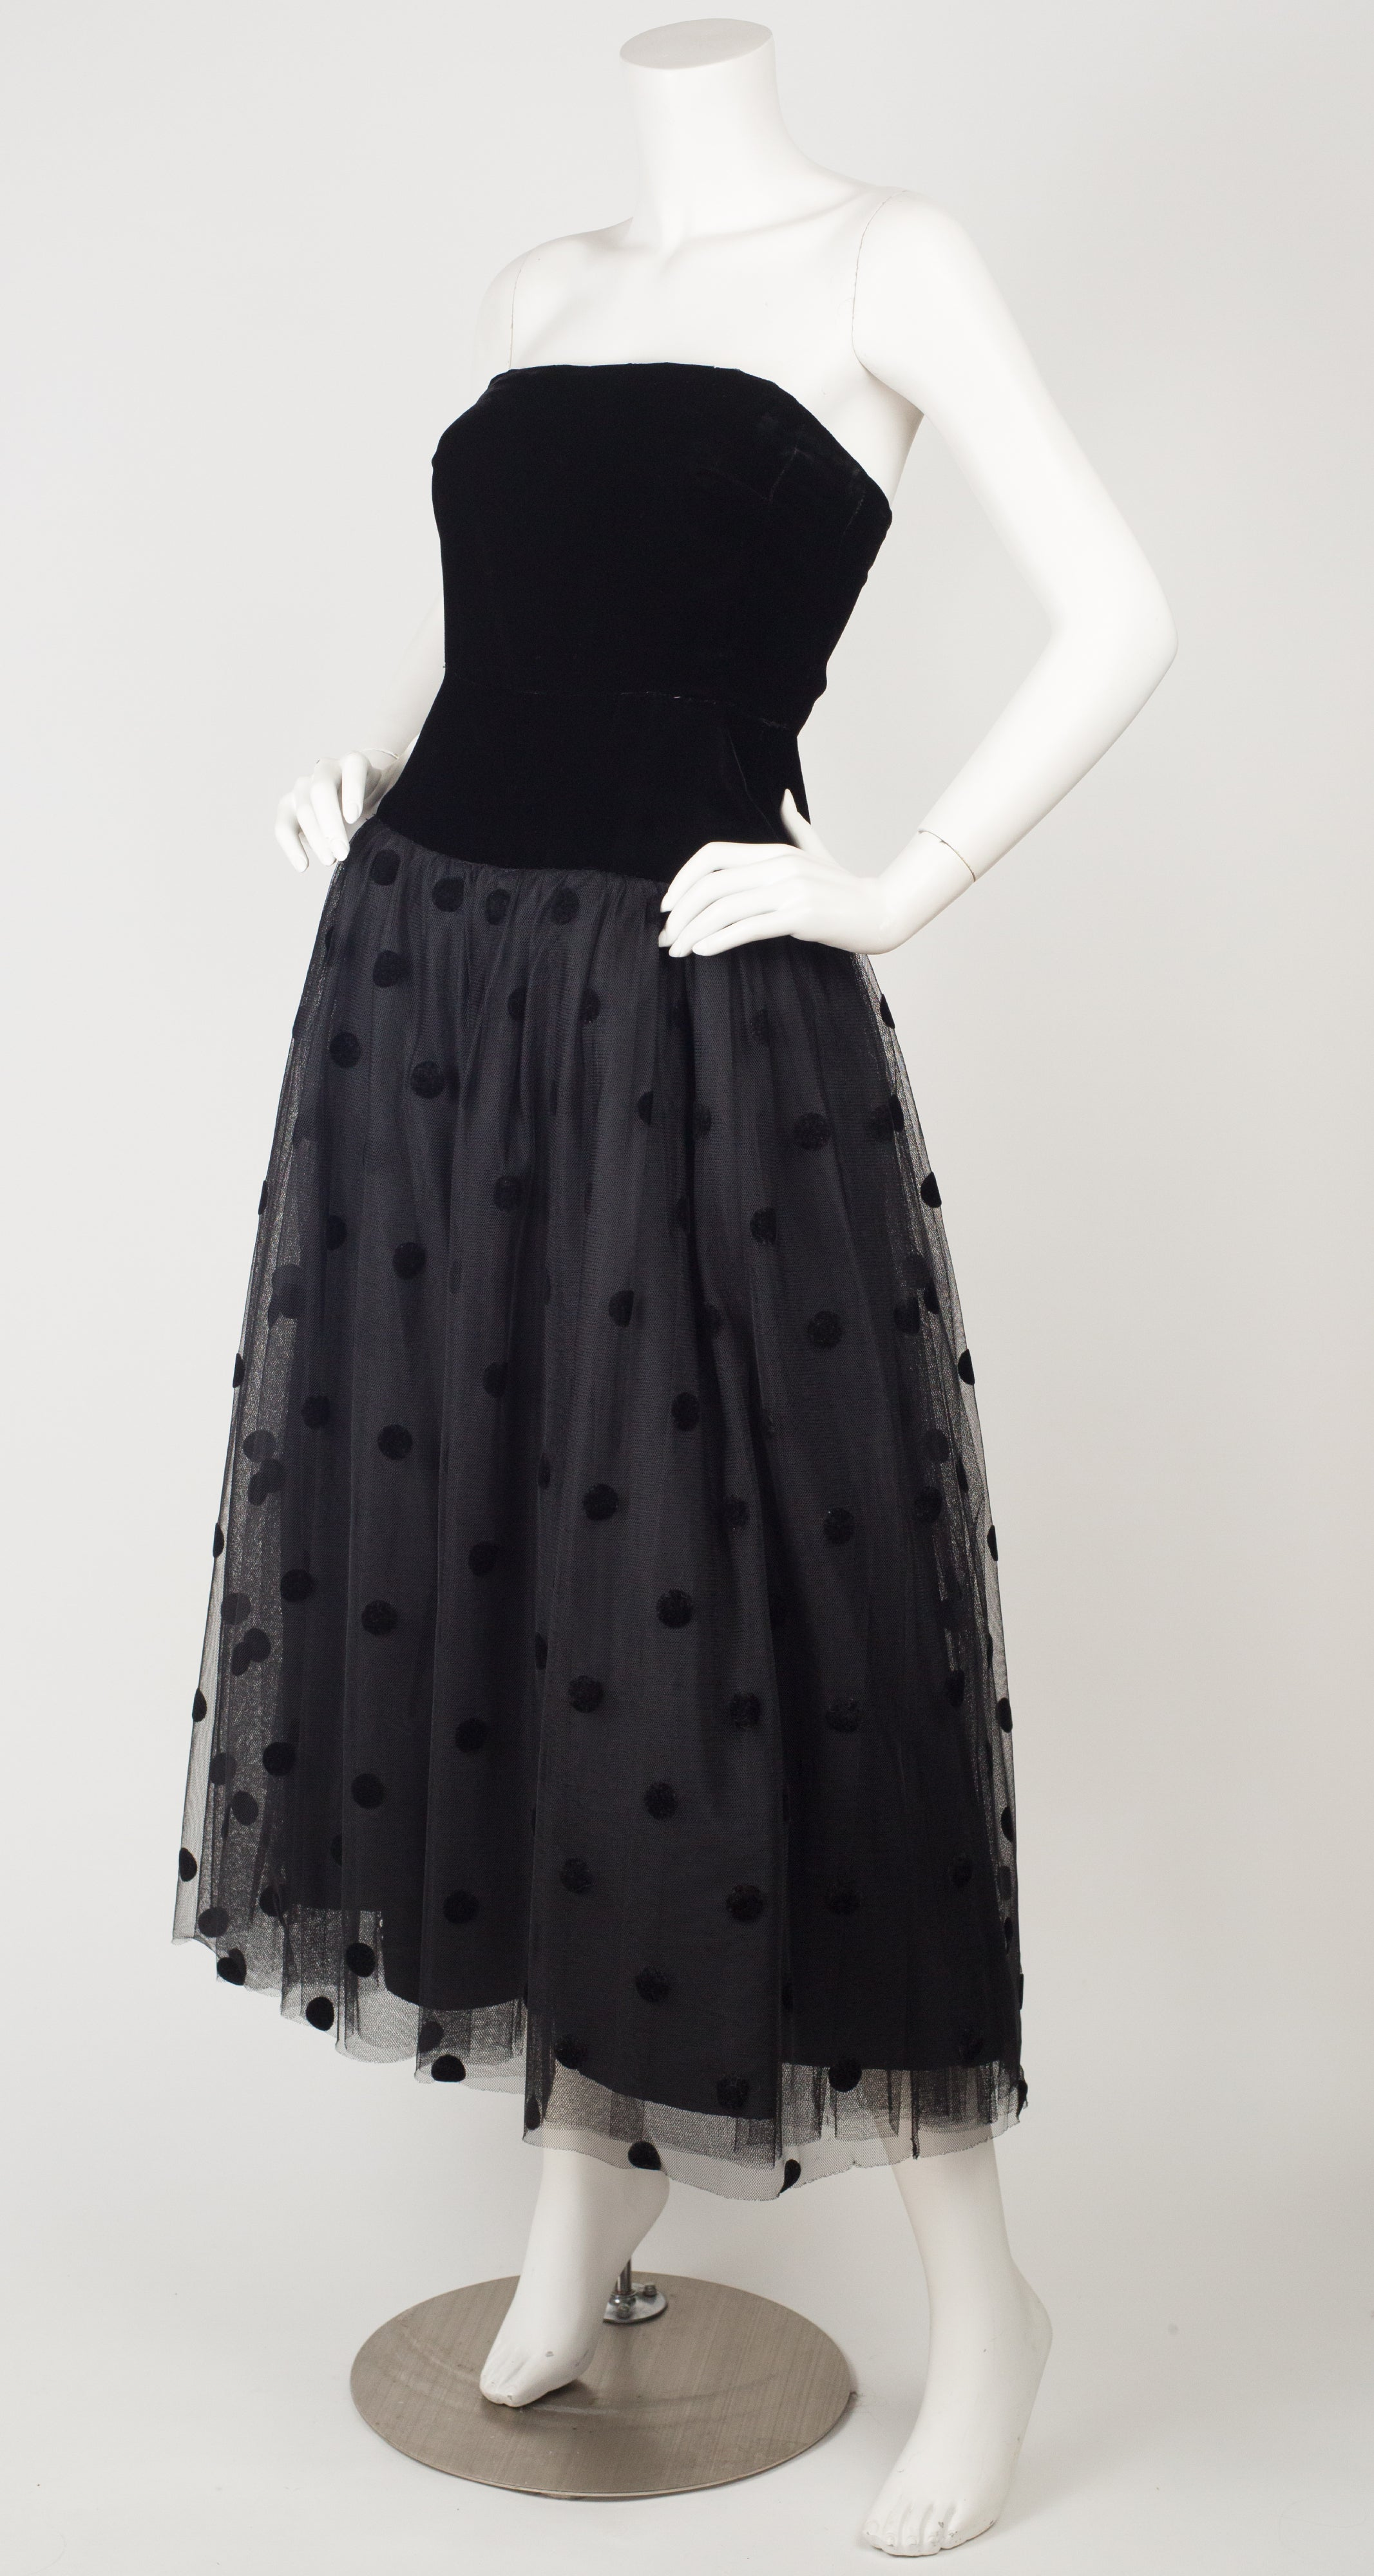 1980s Ballerina Black Tulle & Velvet Strapless Evening Dress